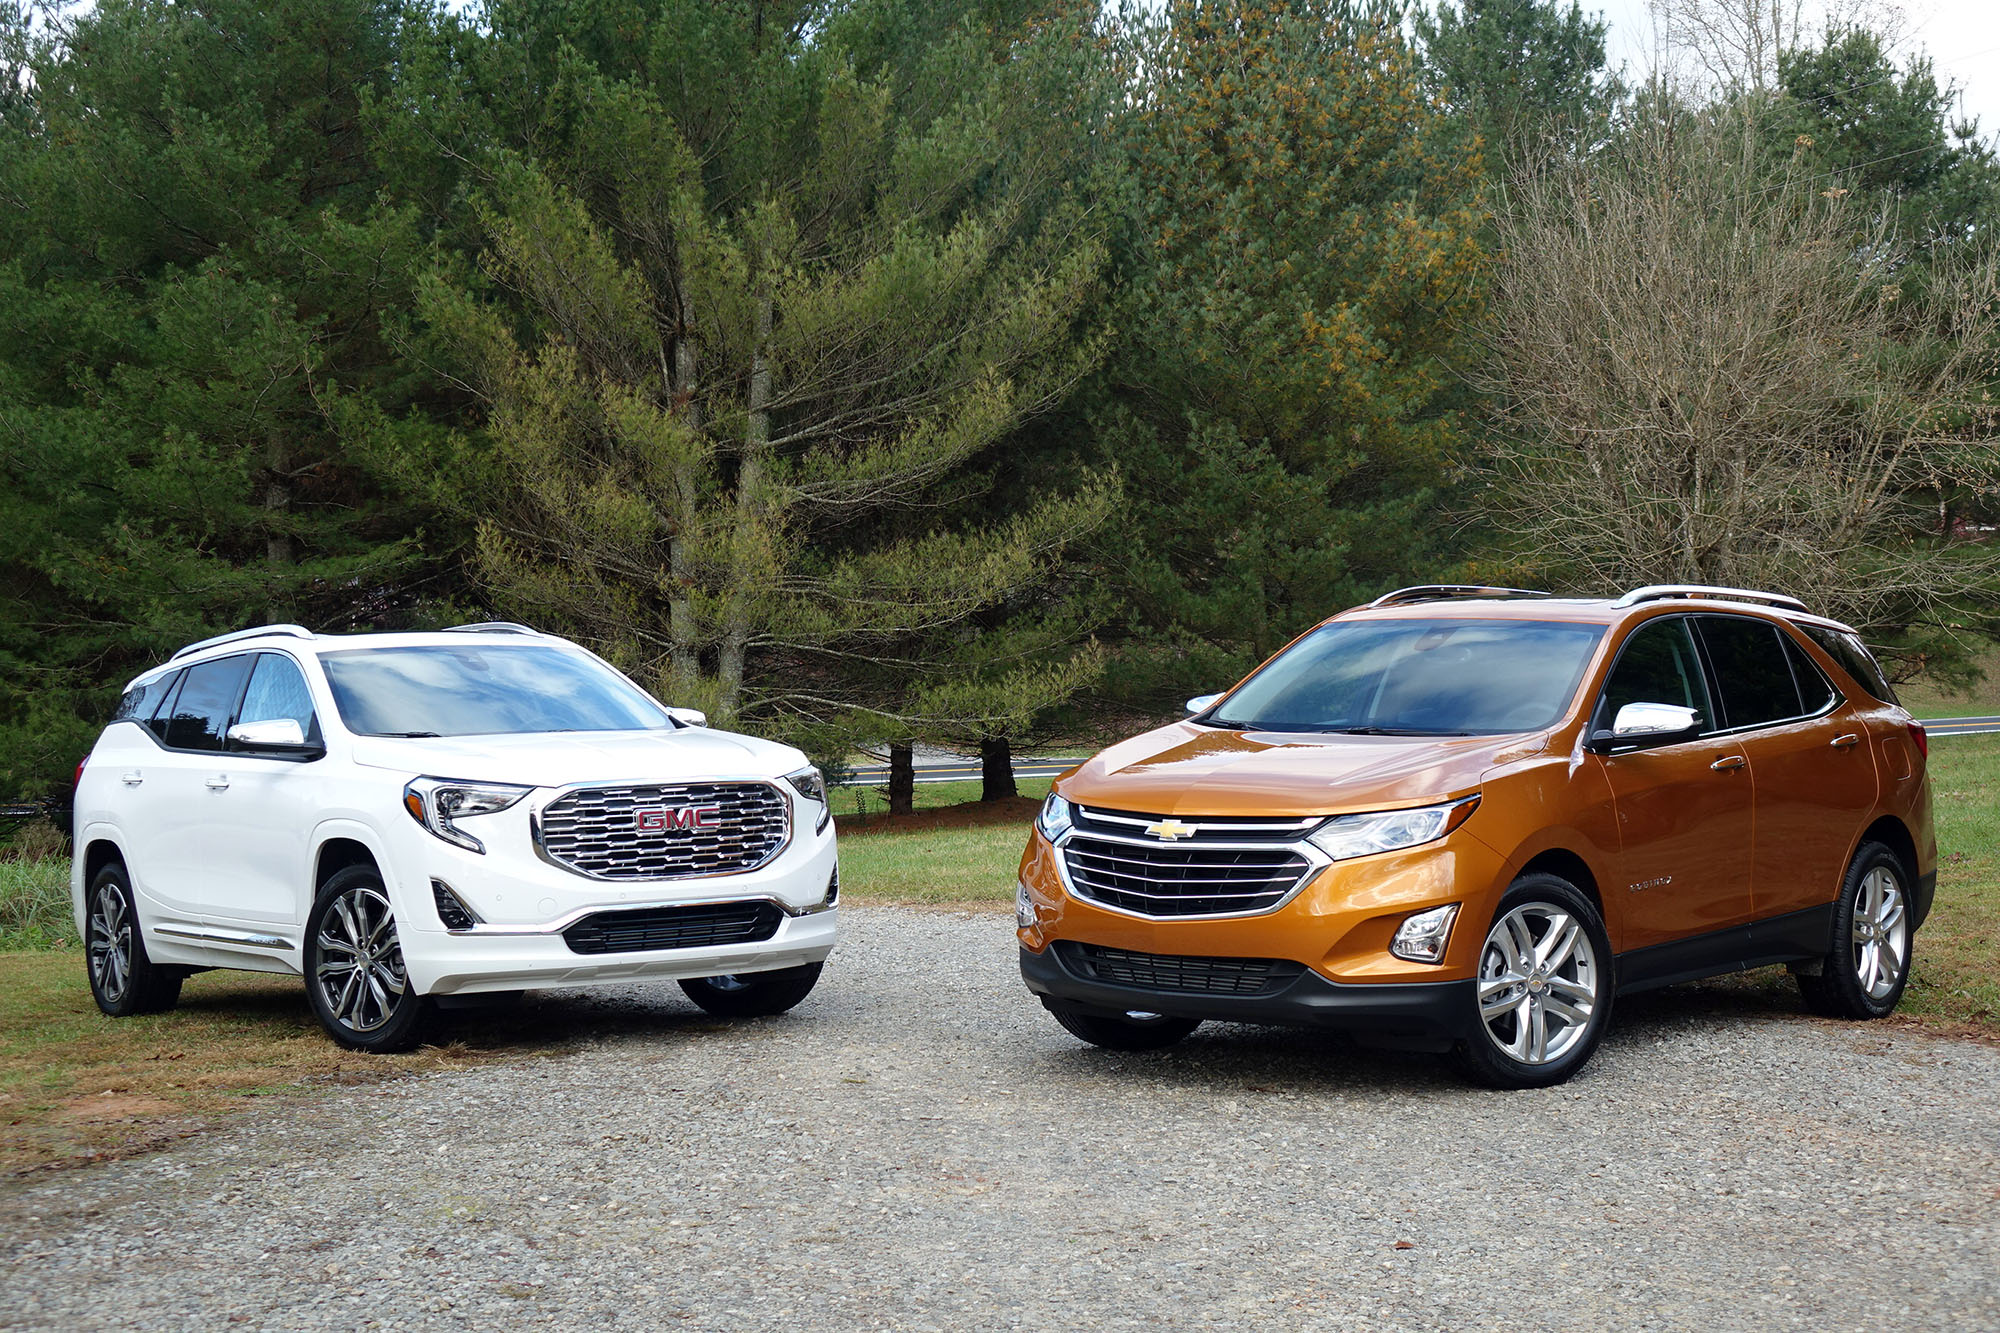 2018 chevrolet equinox vs  2018 gmc terrain  compare cars